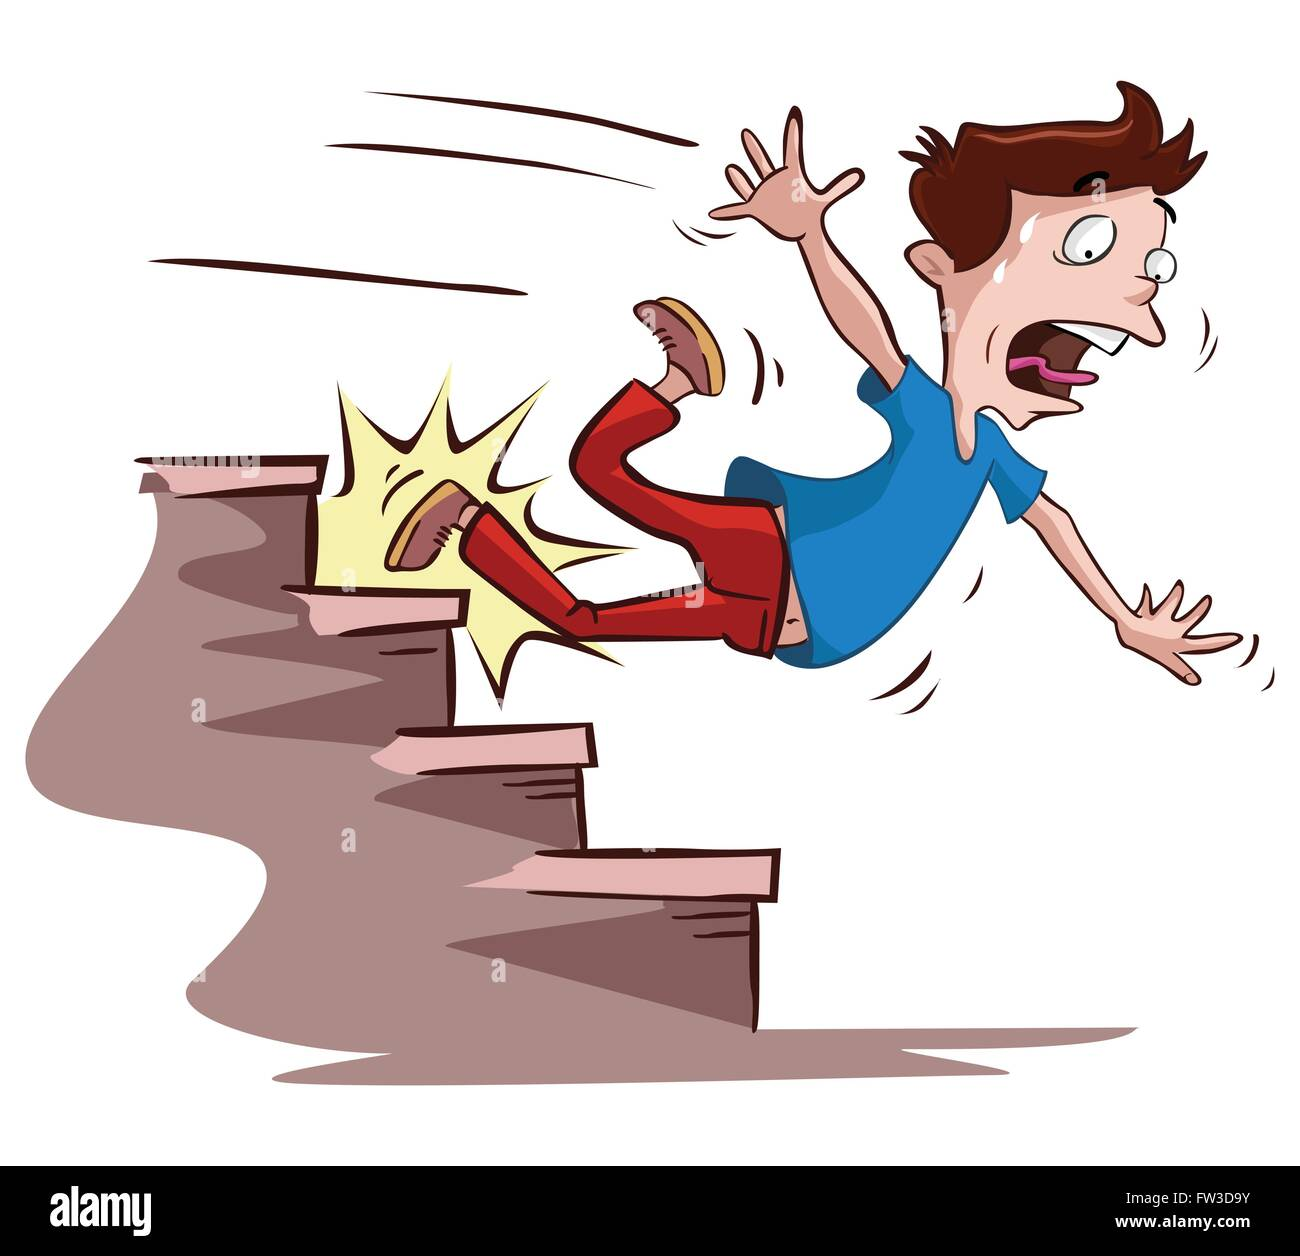 men slipped on the stairs - Stock Image